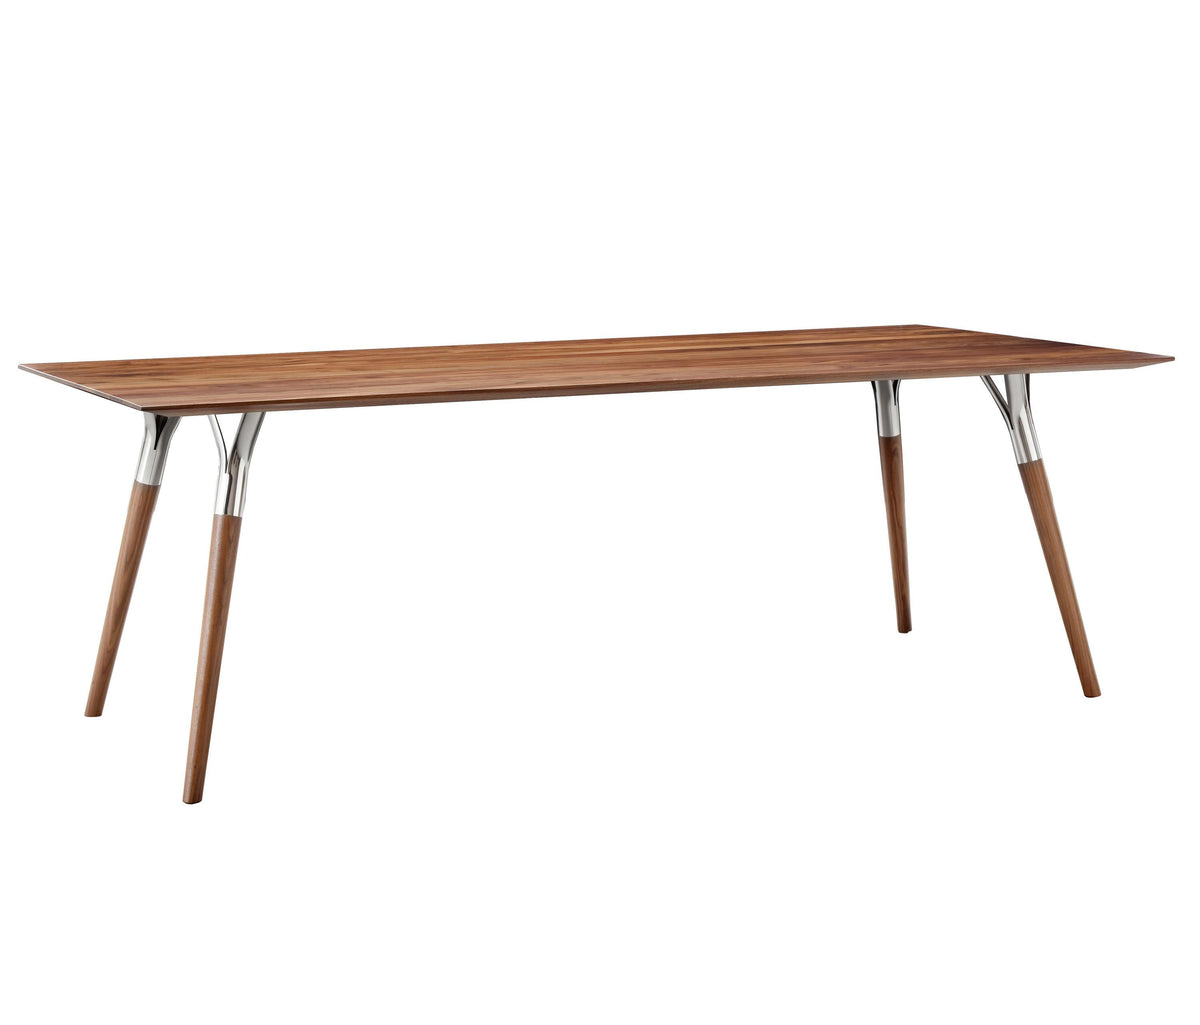 Salt & Pepper 843 Rectangular Dining Table-Tonon-Contract Furniture Store